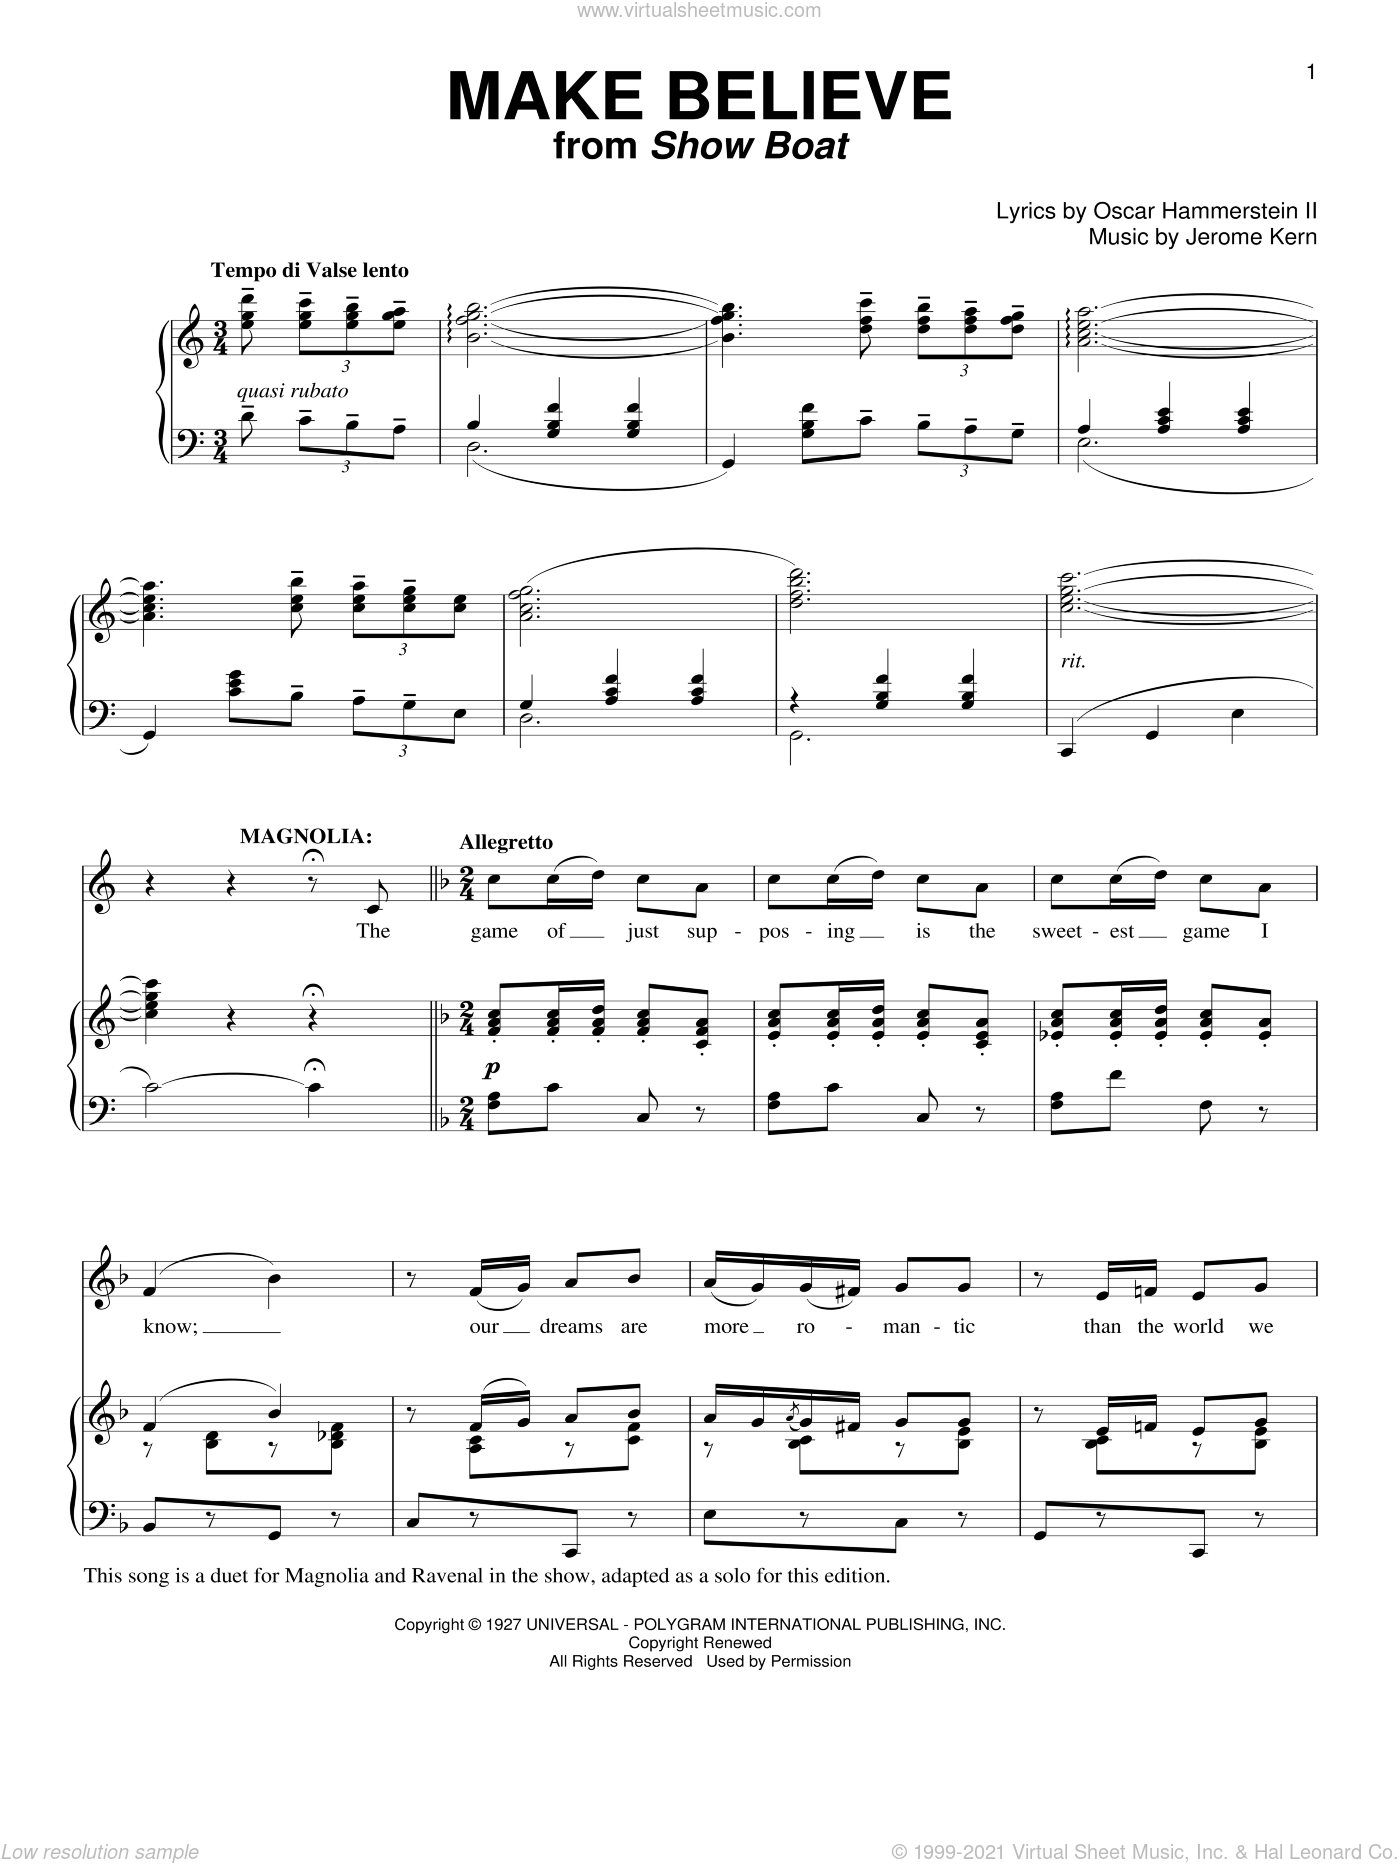 Make Believe sheet music for voice and piano by Oscar II Hammerstein, Benny Goodman, Frank Sinatra and Jerome Kern. Score Image Preview.